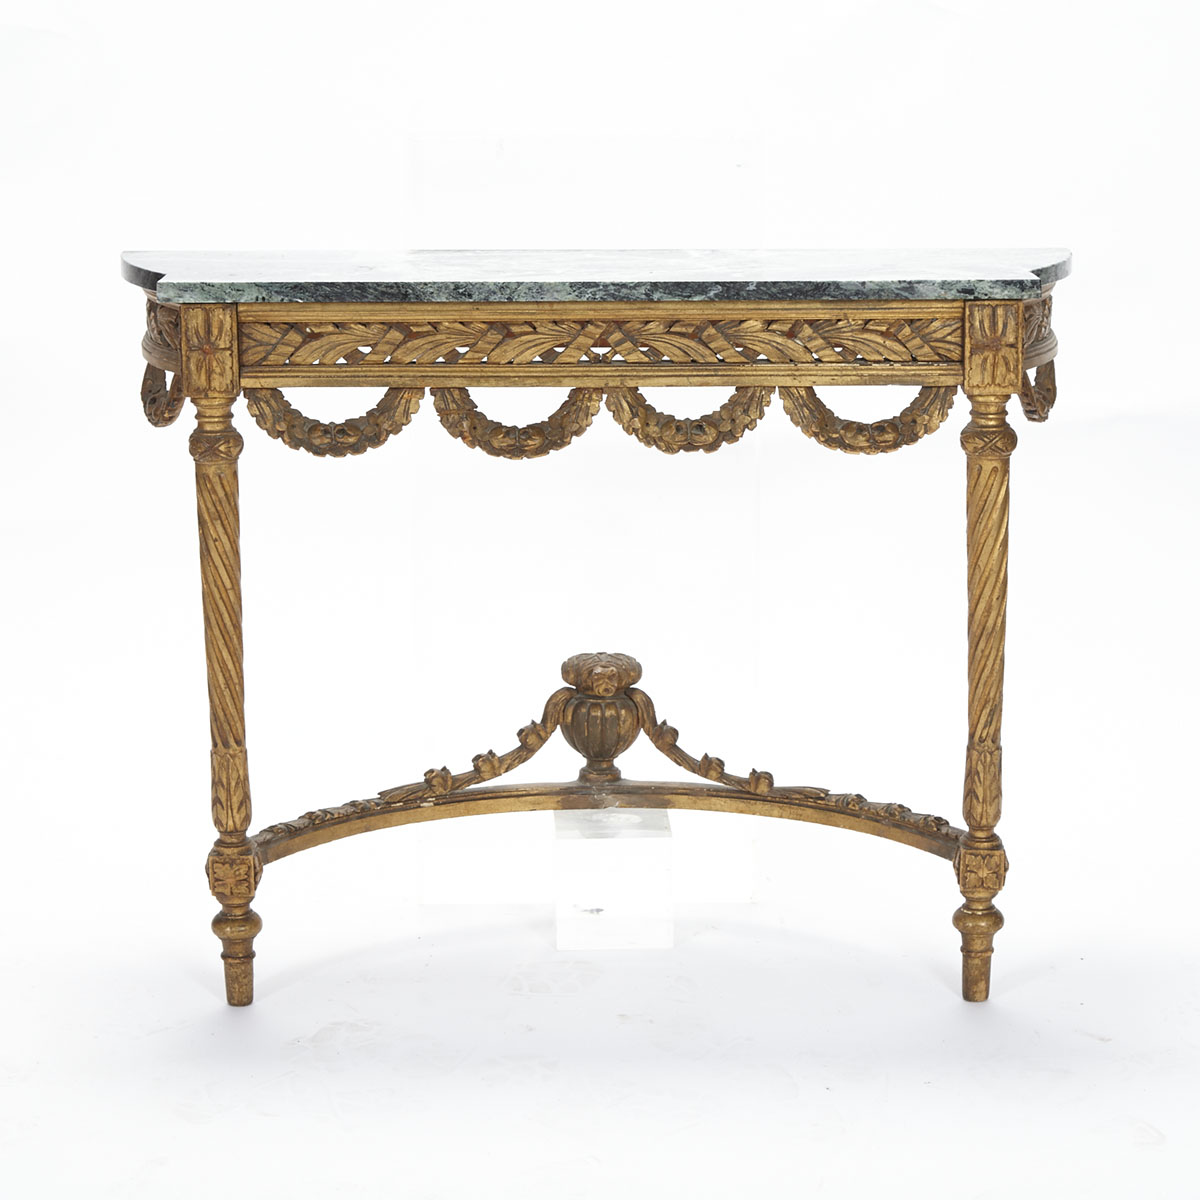 Louis XVI Style Giltwood Console Table, early 20th century